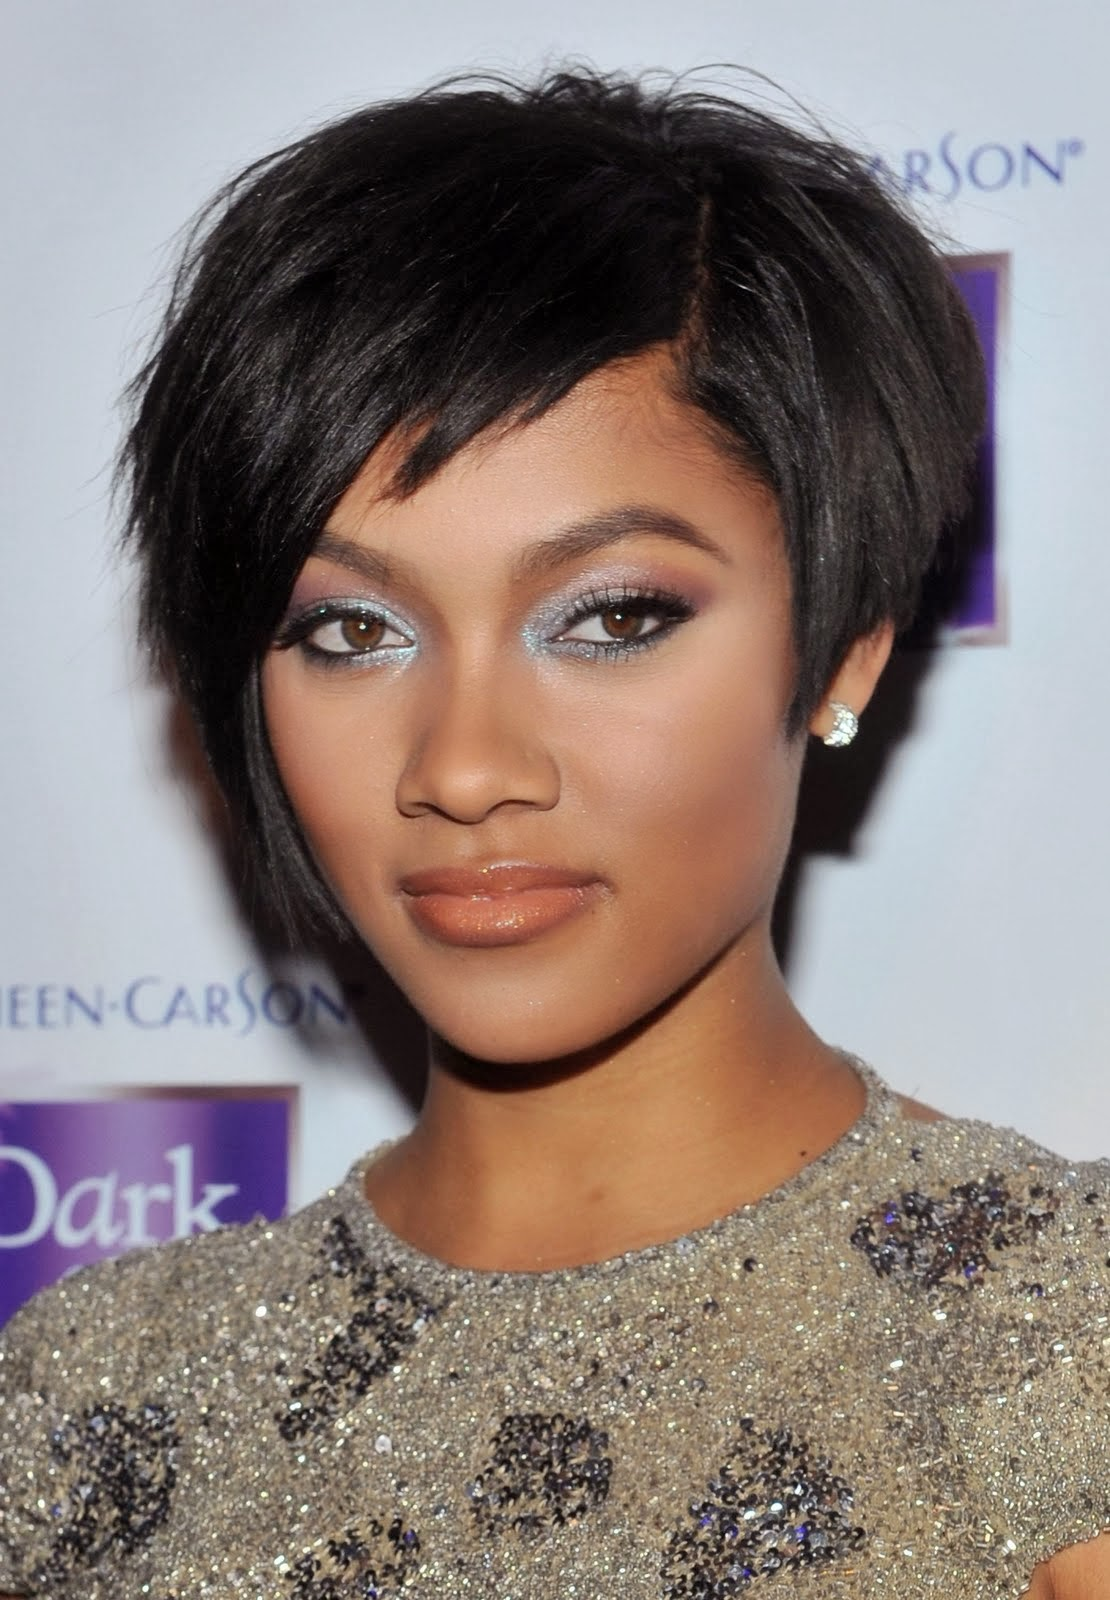 britishheartsxo: hairstyles for black women with short hair